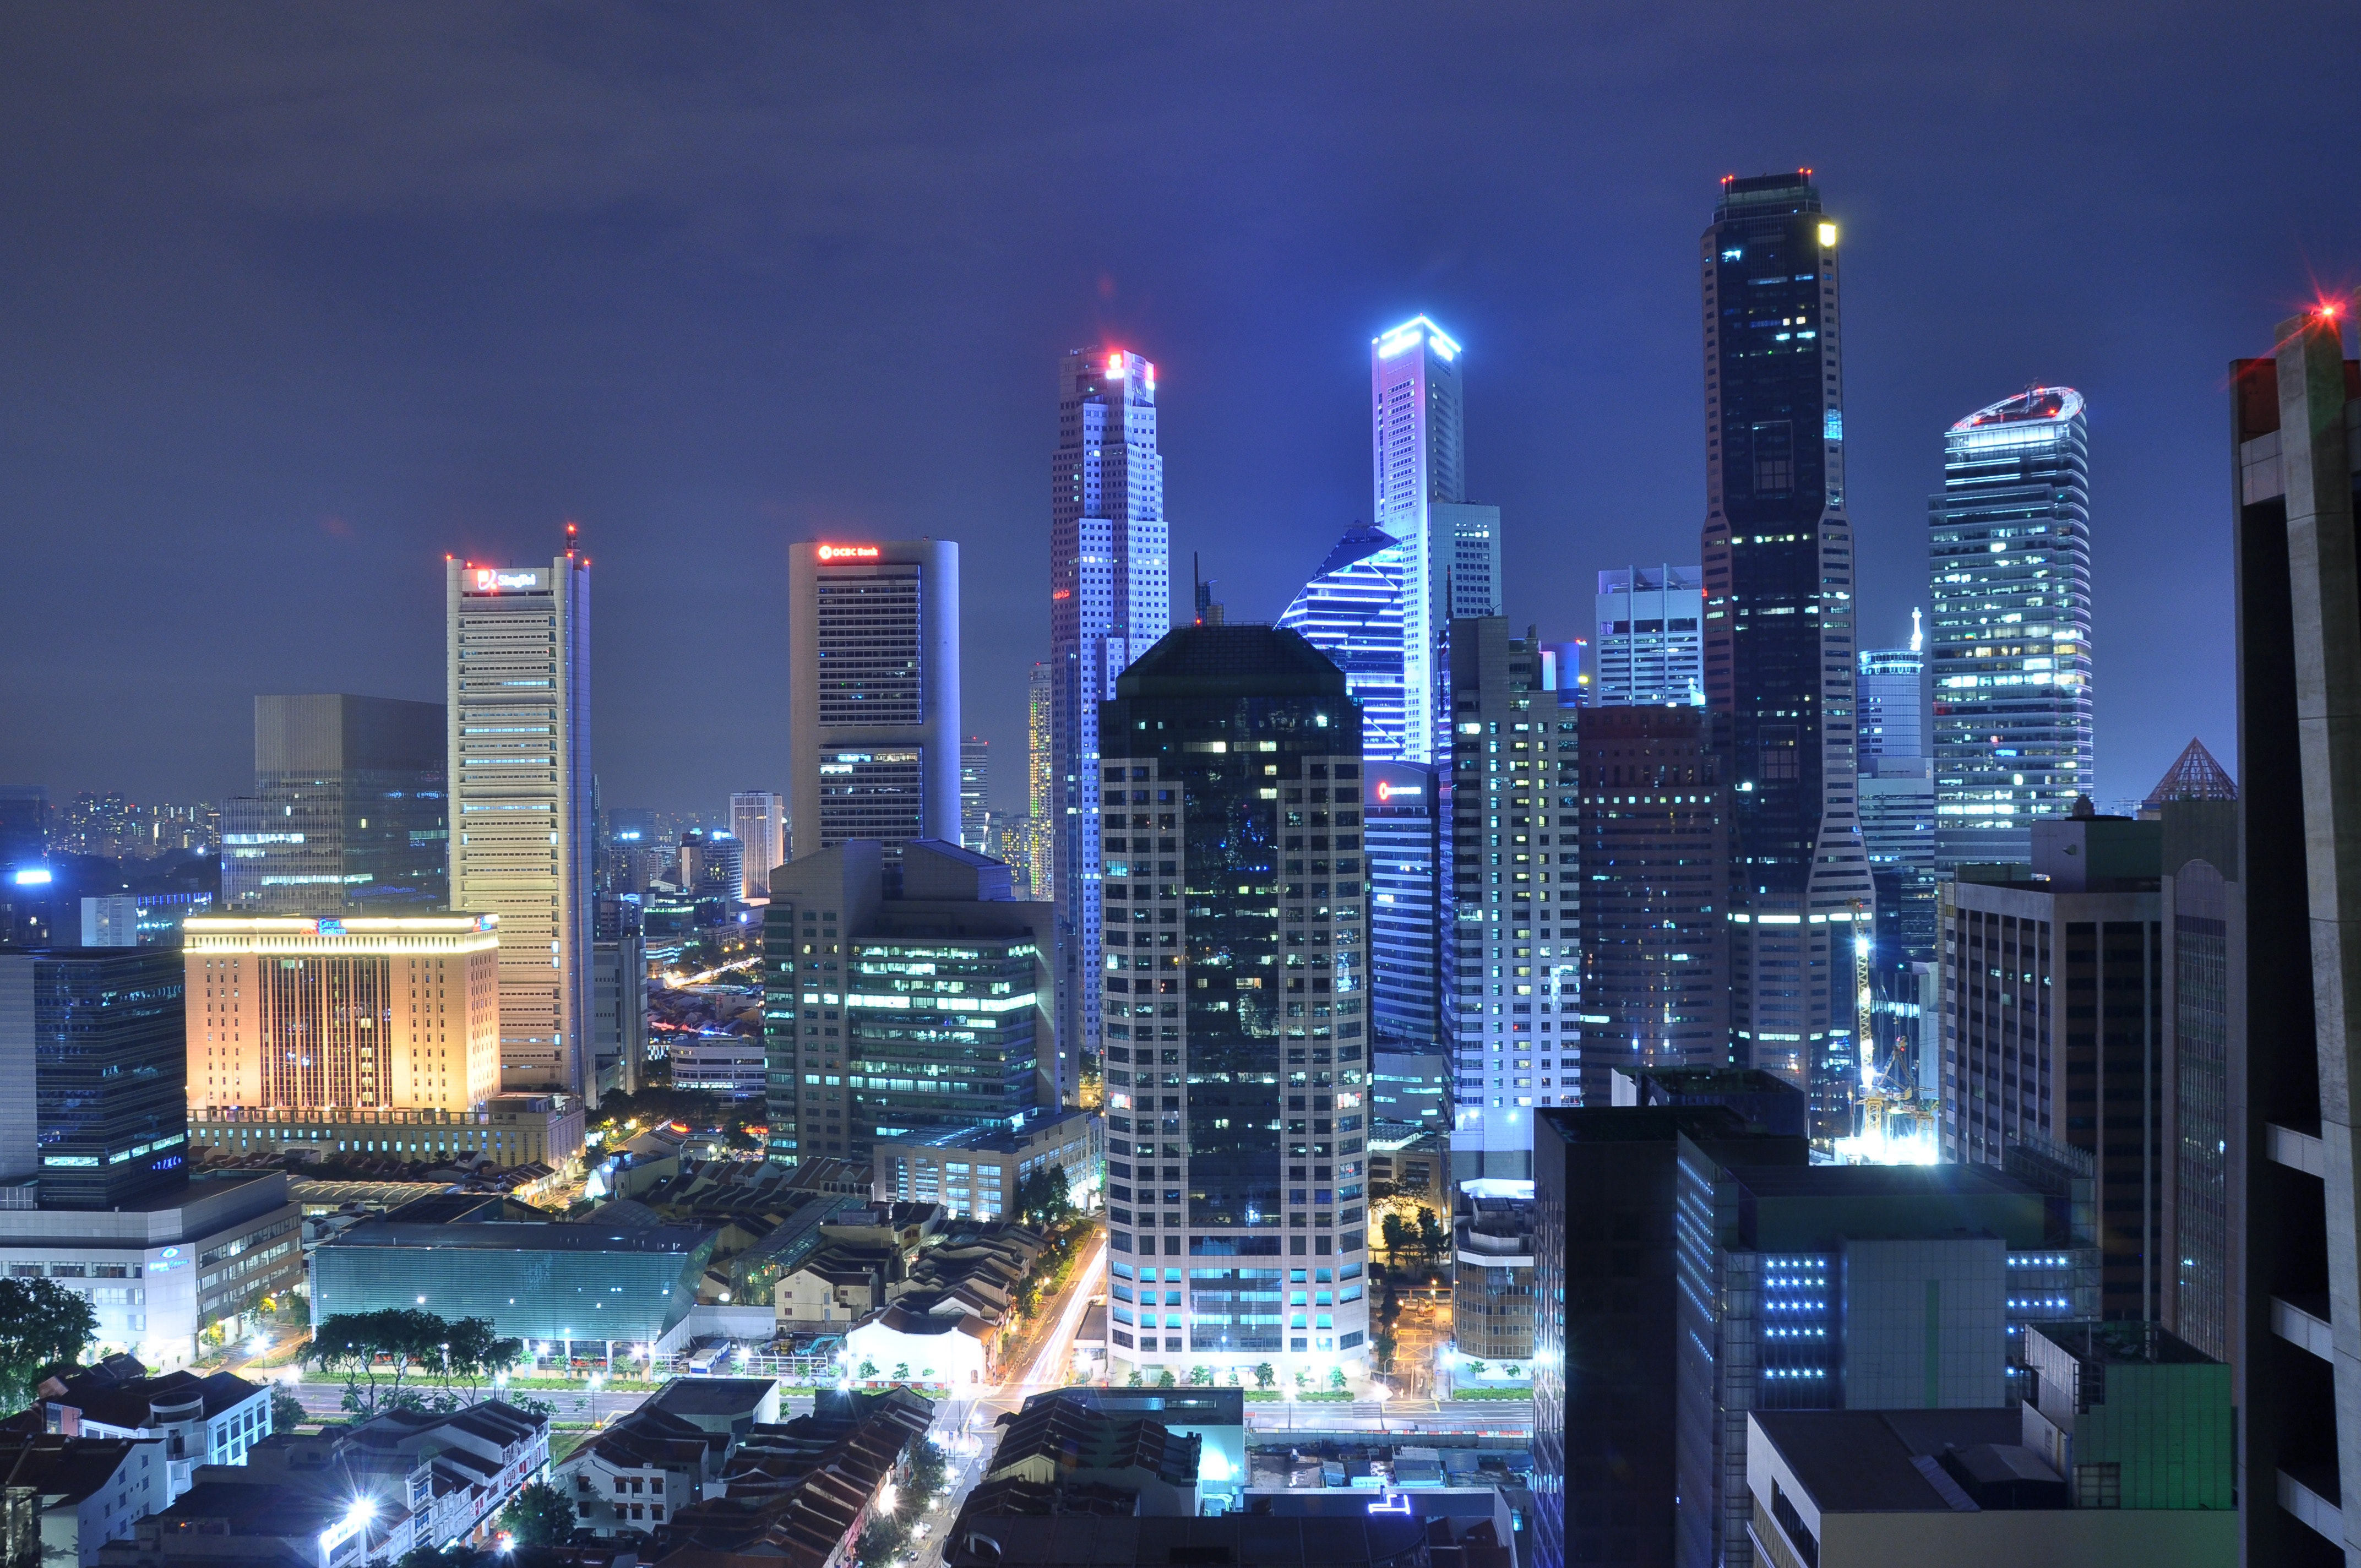 Photographing Cities At Night: Panoramic View Of Lighted City At Night · Free Stock Photo